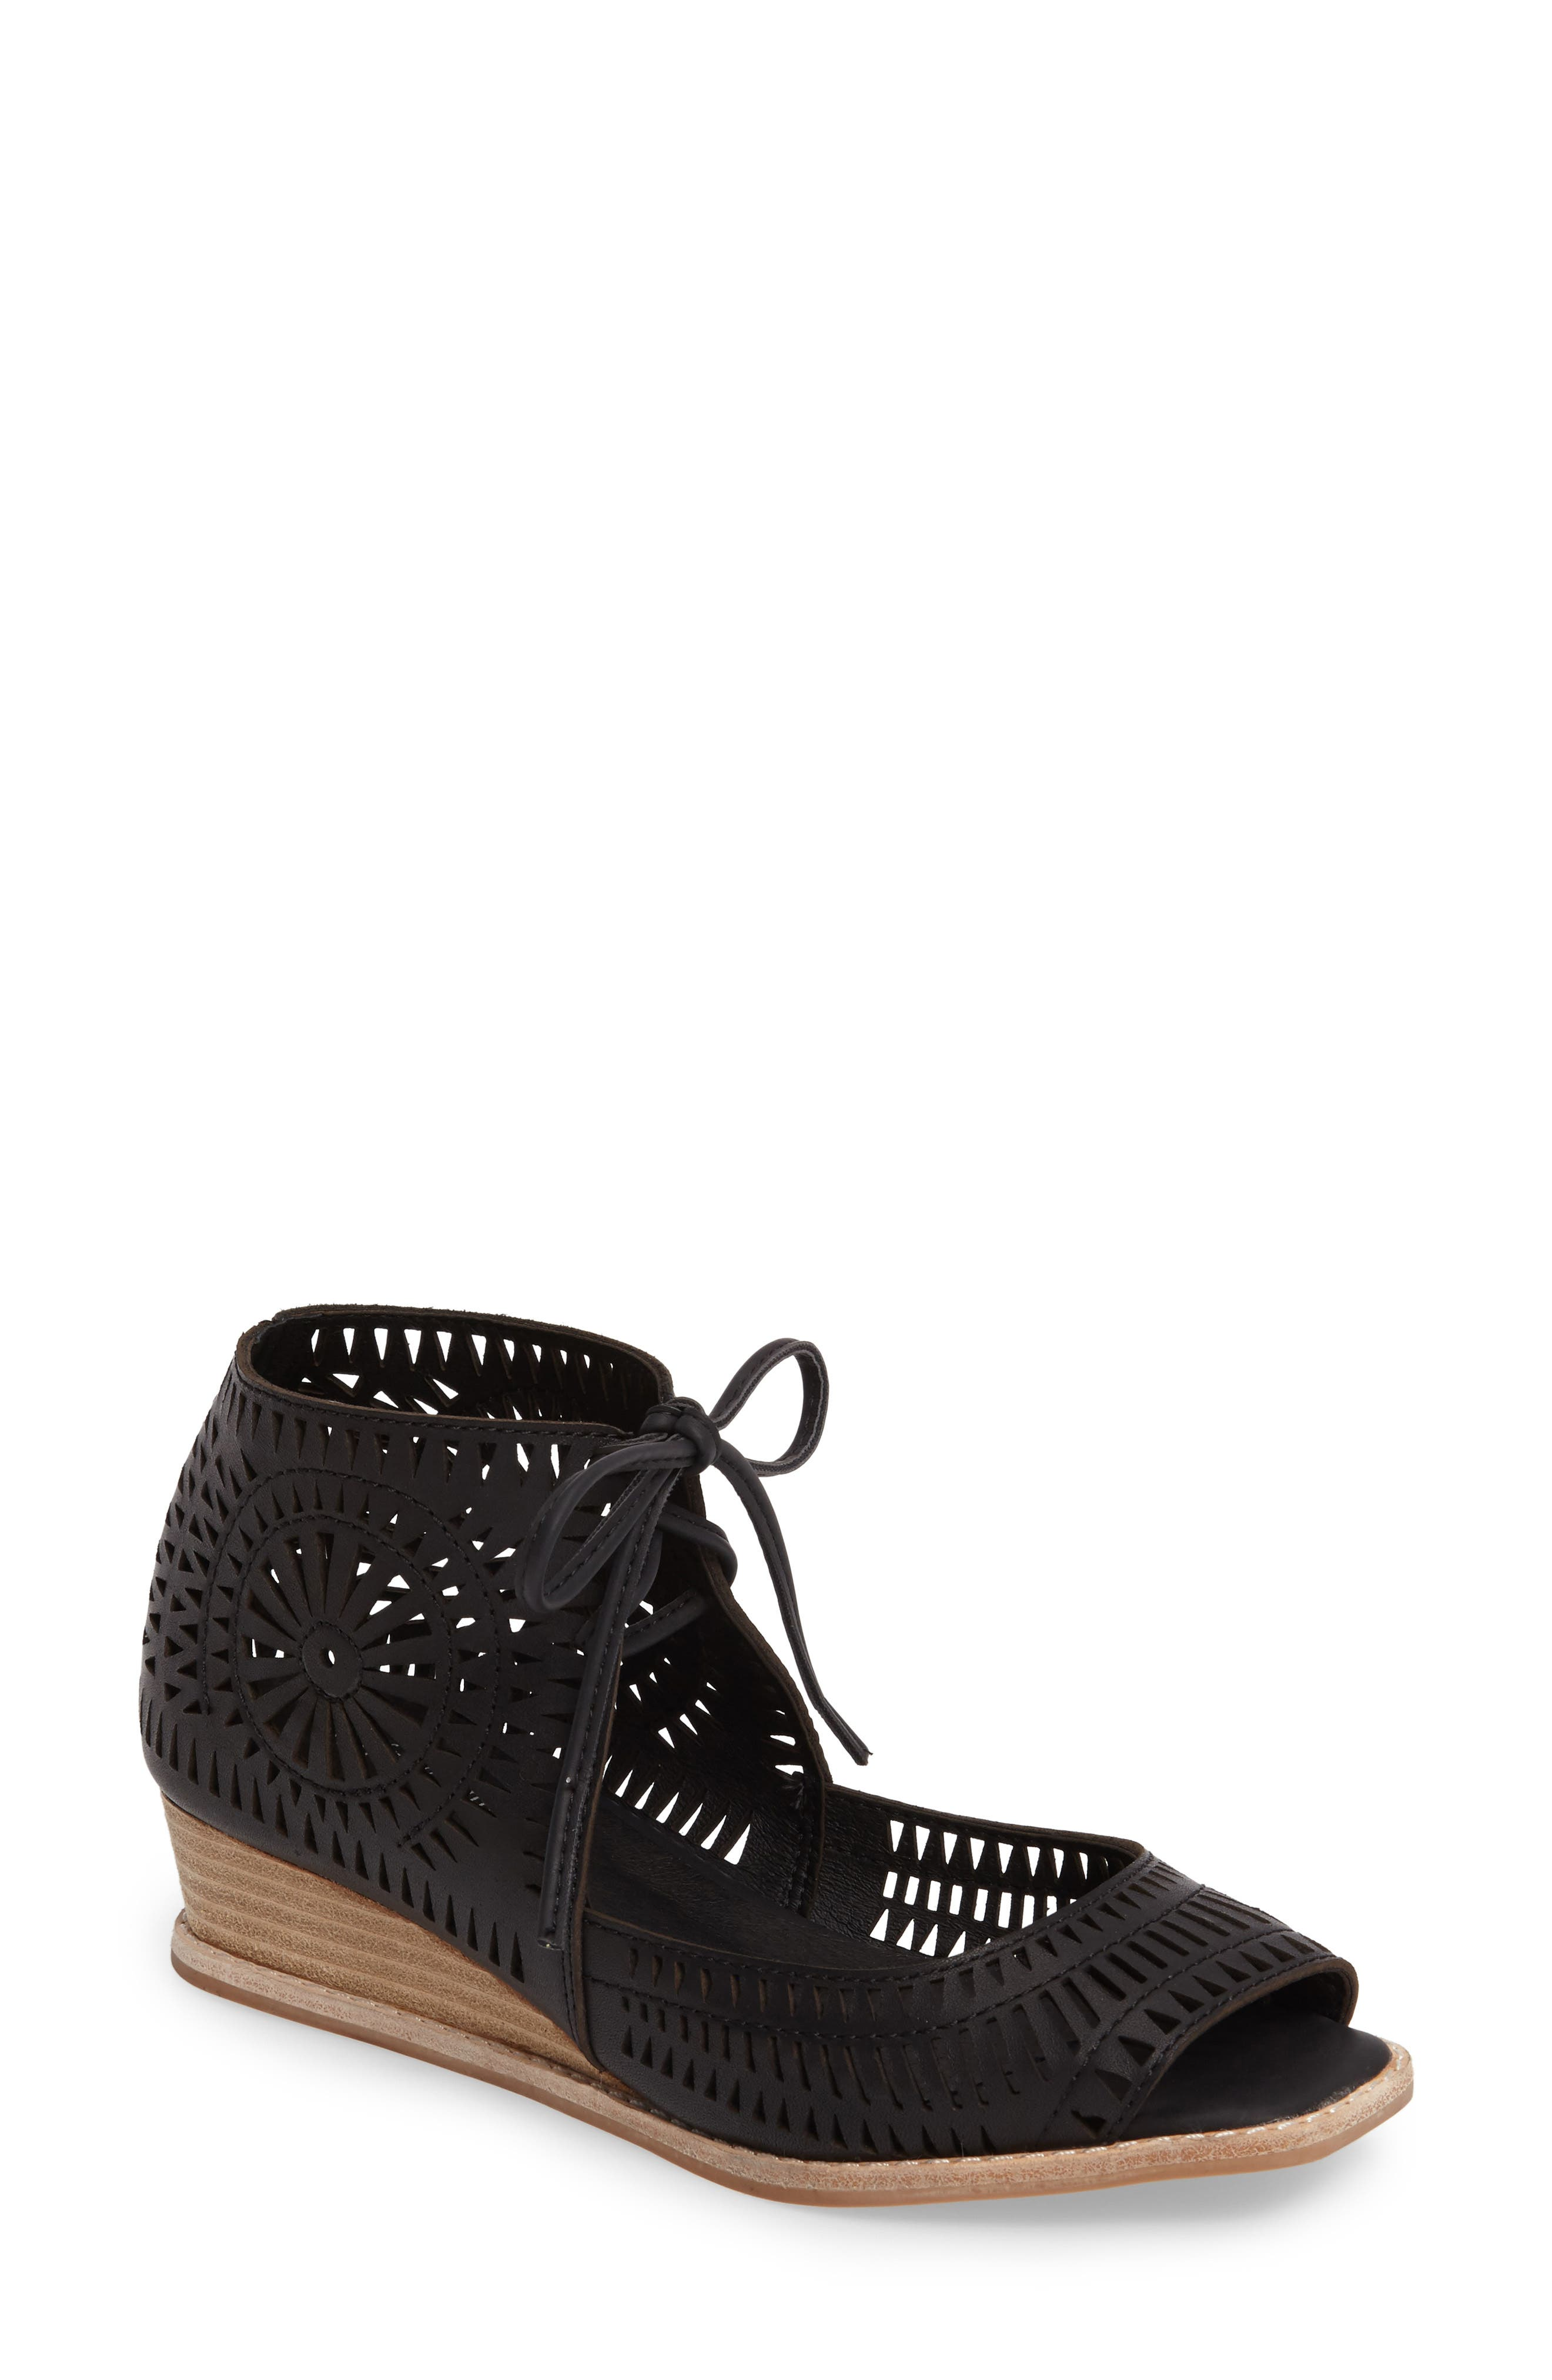 Rayos Perforated Wedge Sandal, Main, color, 001